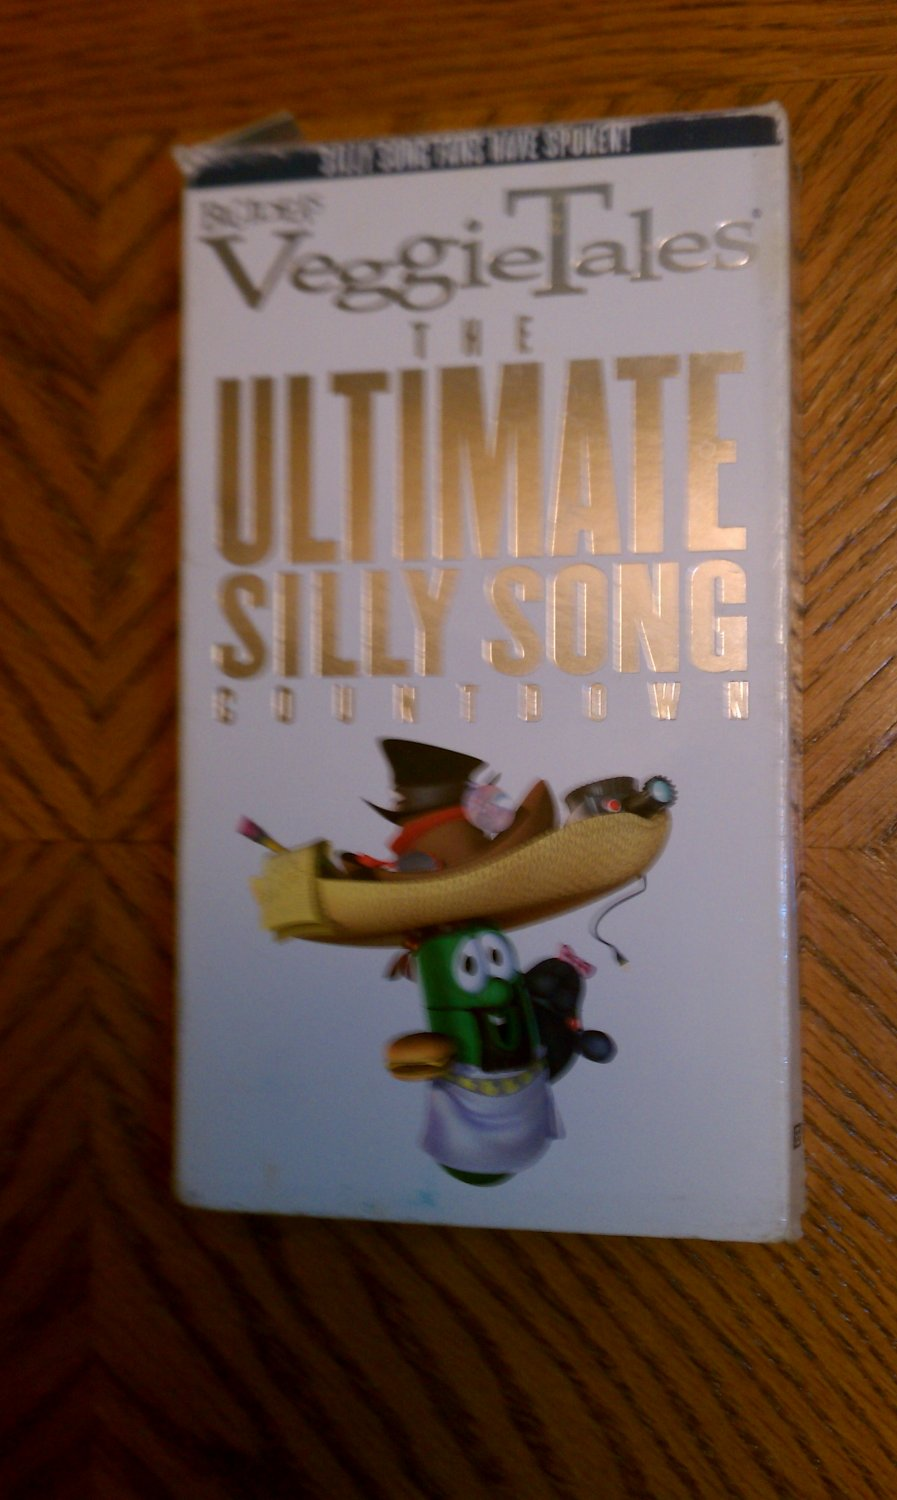 VeggieTales - The Ultimate Silly Song Countdown (VHS, 2001)